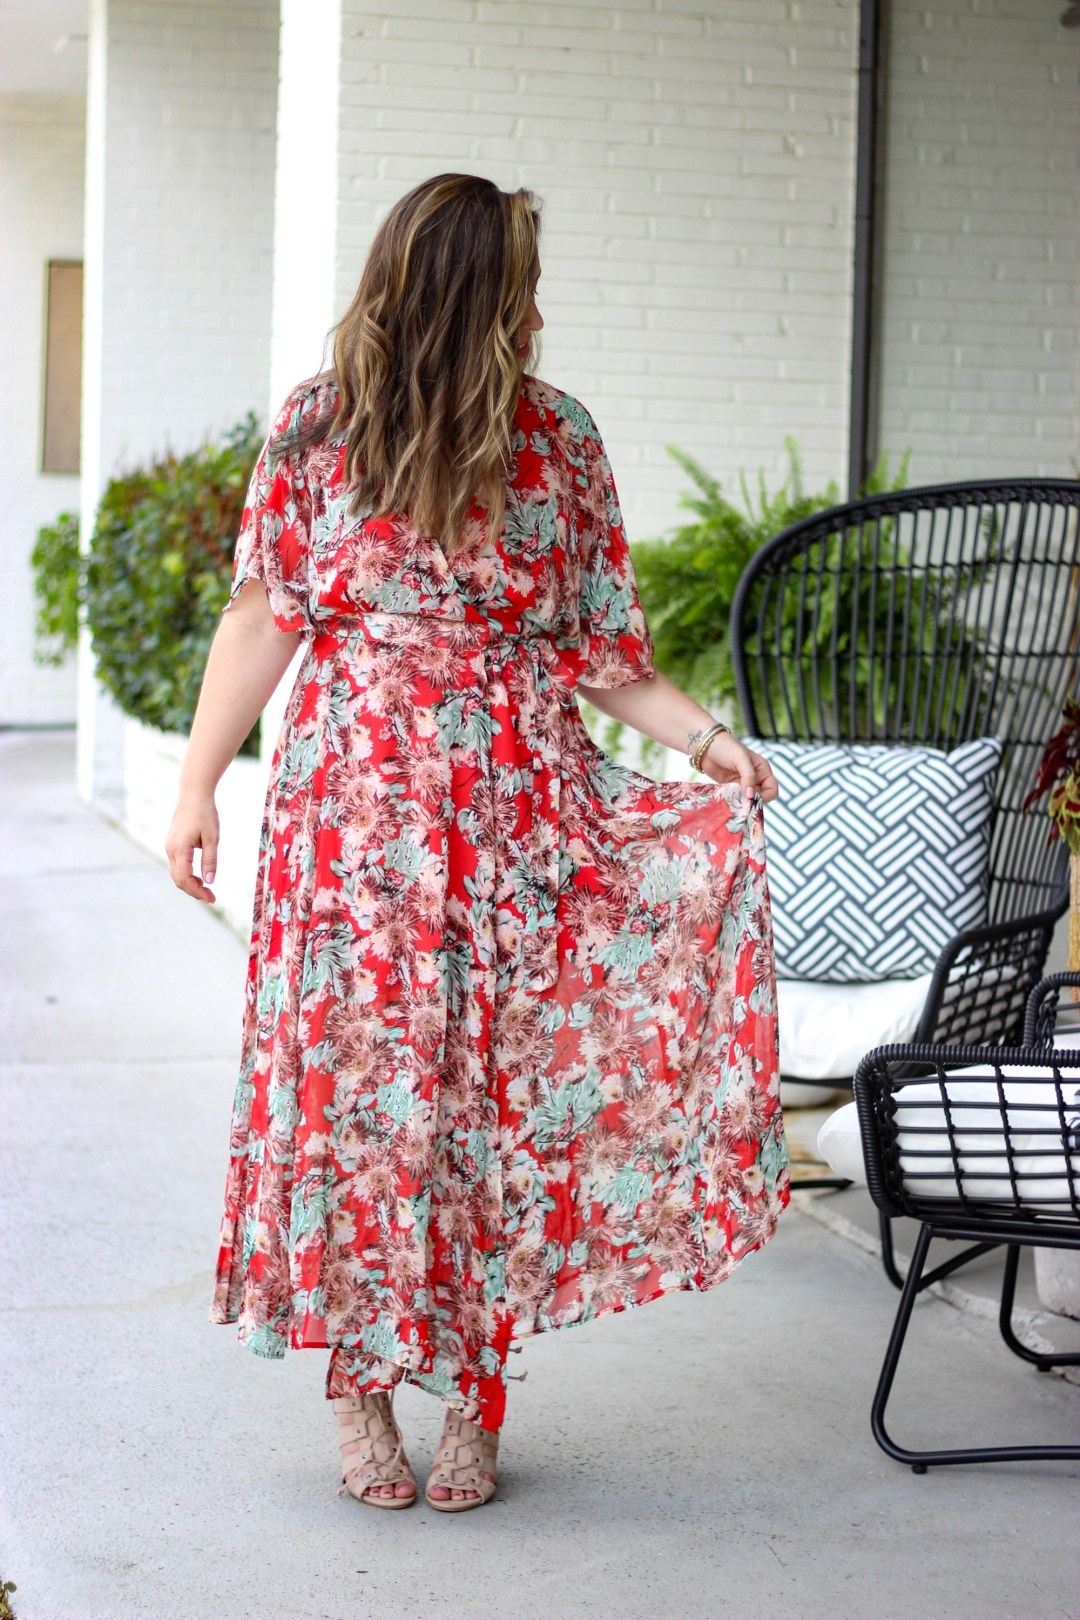 Floral Wrap Dress | Just Peachy Blog